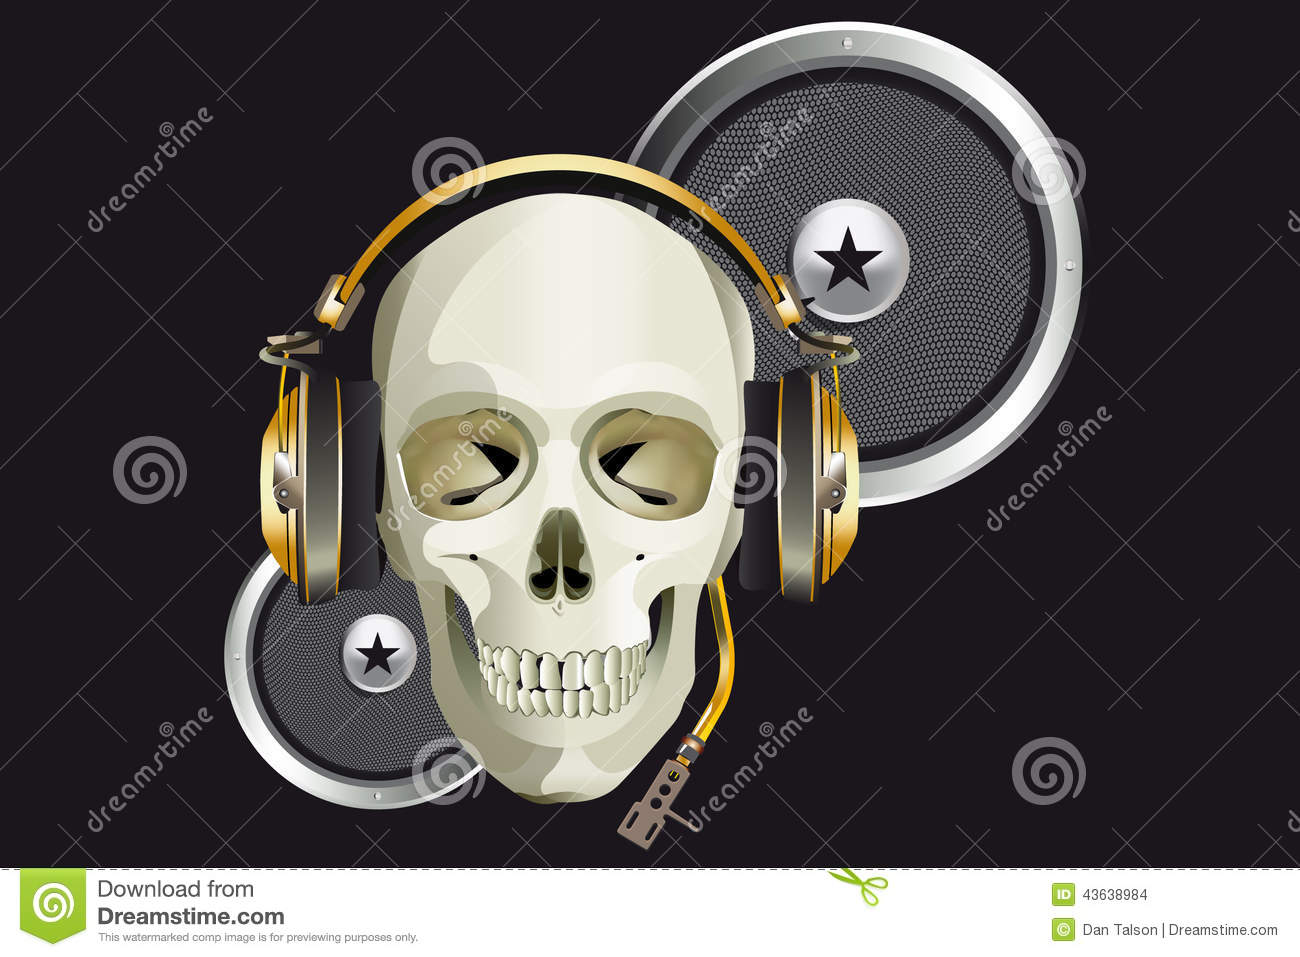 These headphones let you listen to music through the bones of the skull